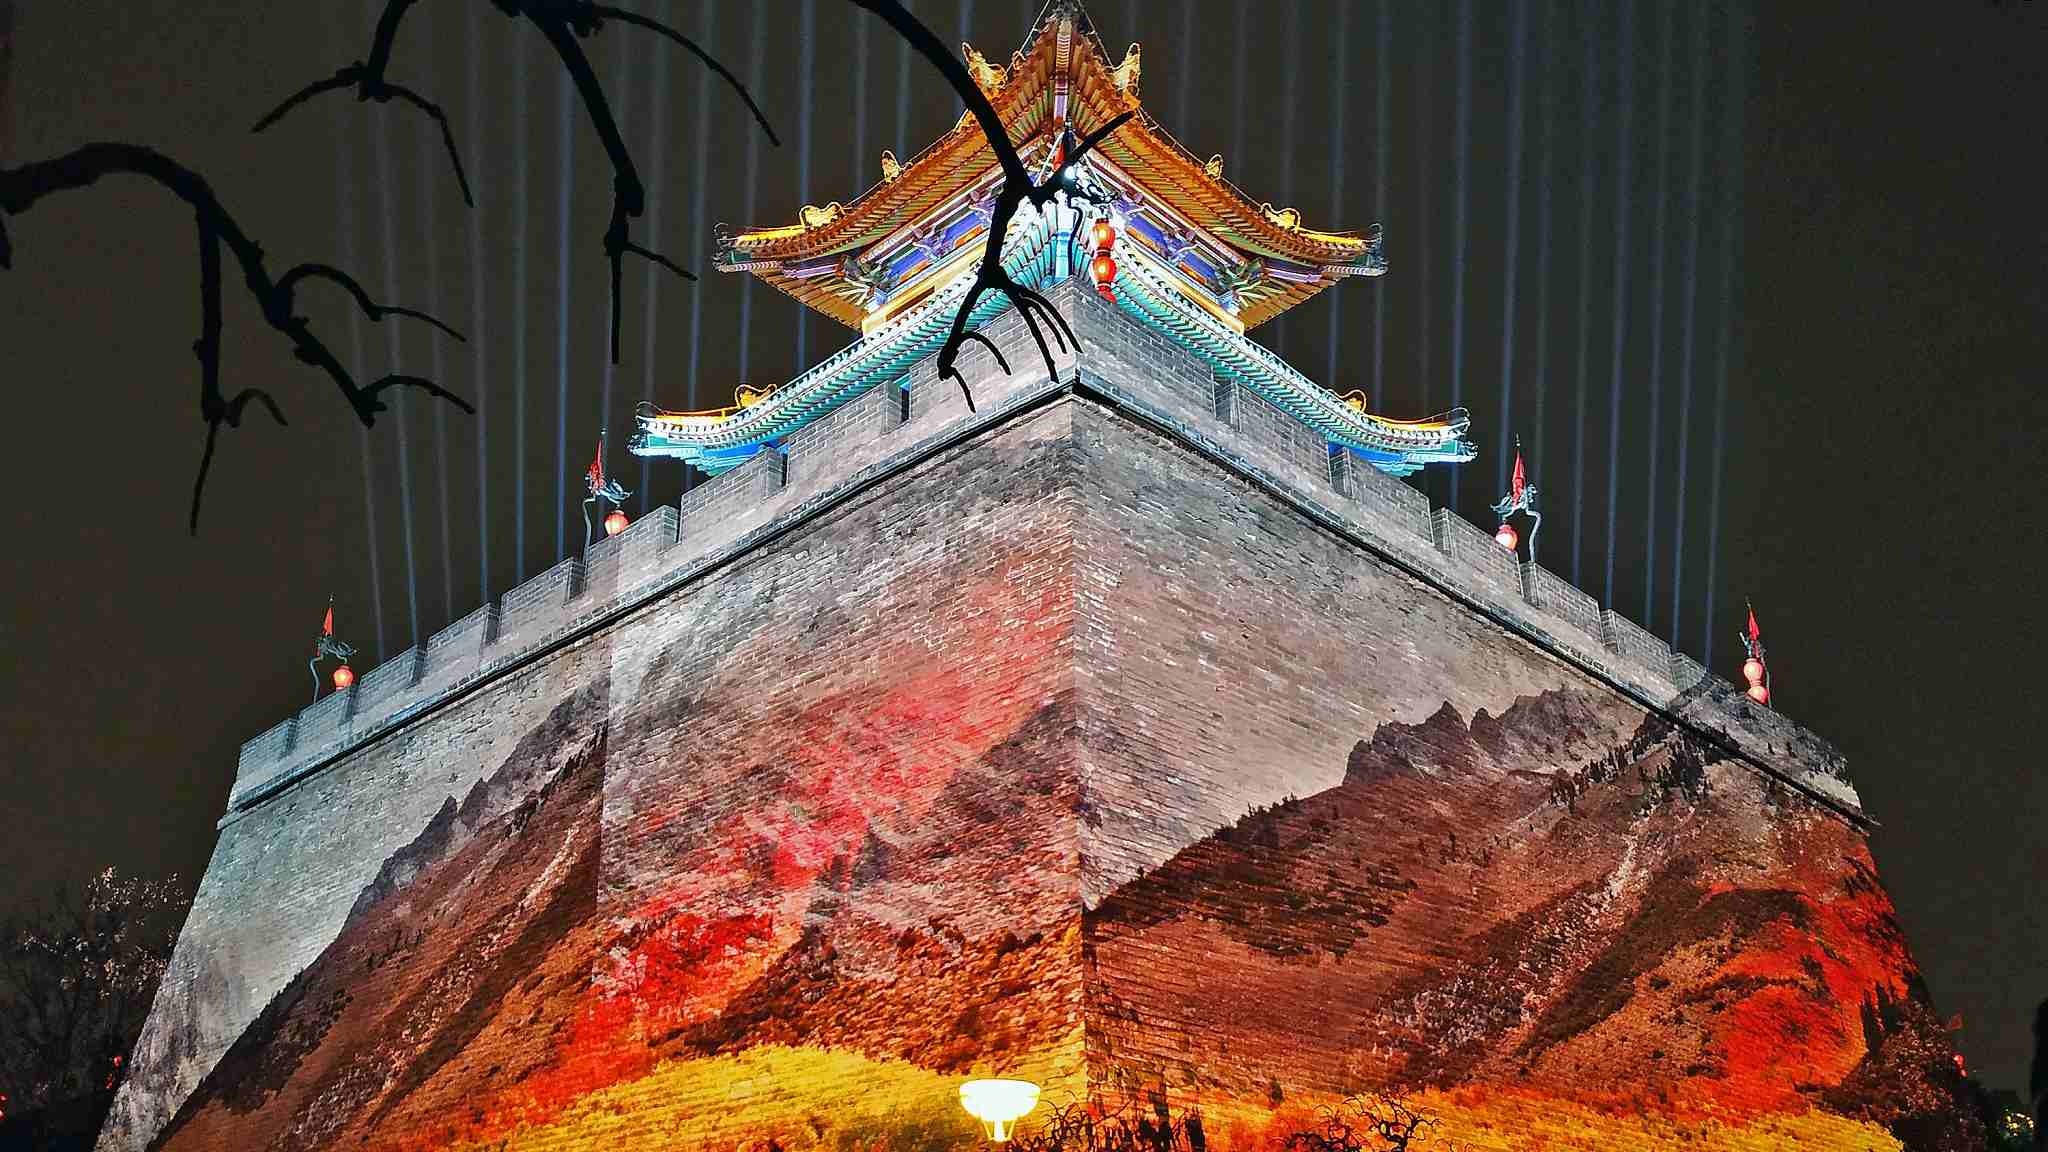 Spectacular light show on Xi'an's ancient city walls